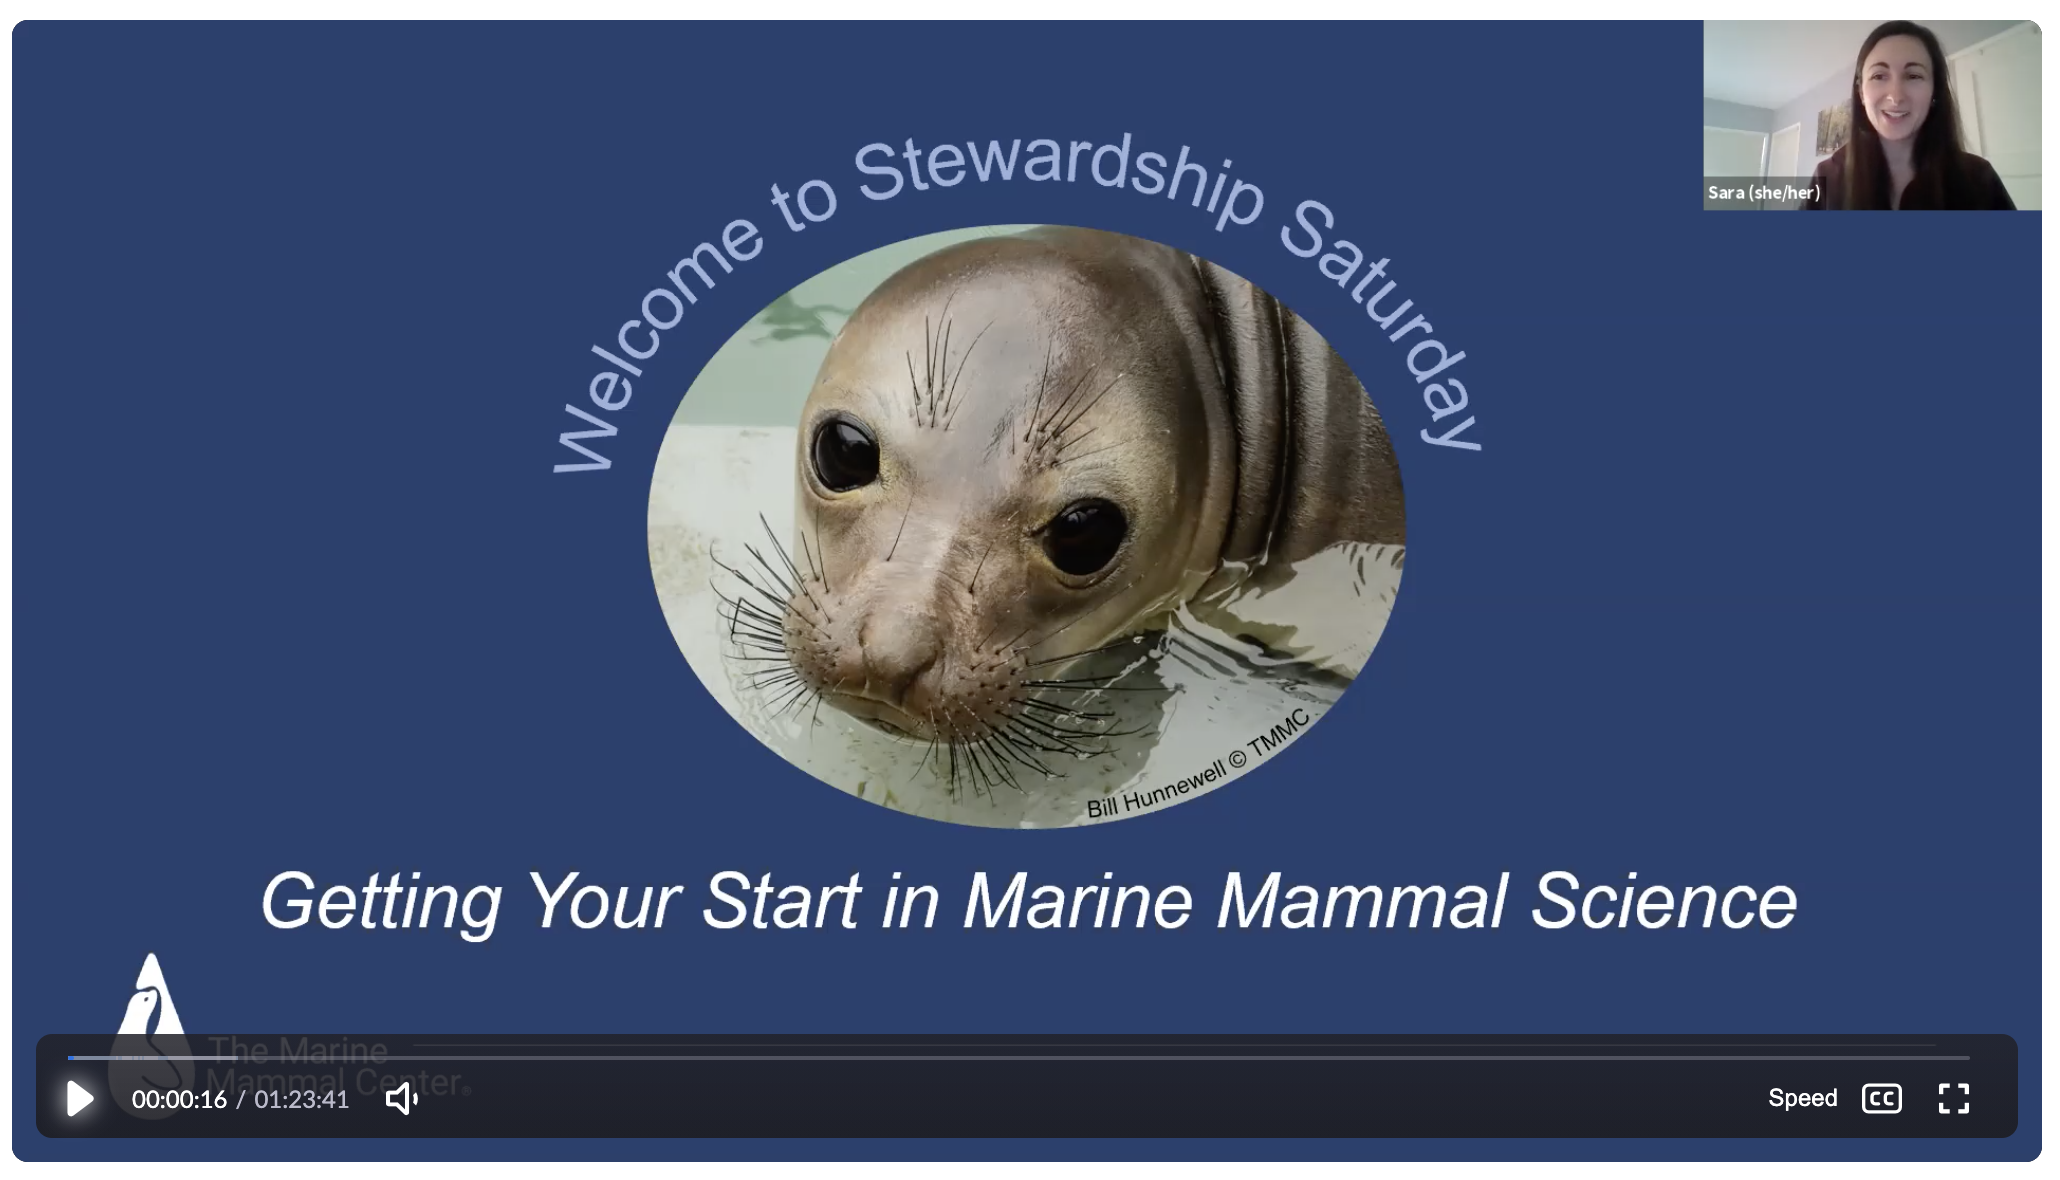 Stewardship Saturday: Getting Your Start in Marine Mammal Science